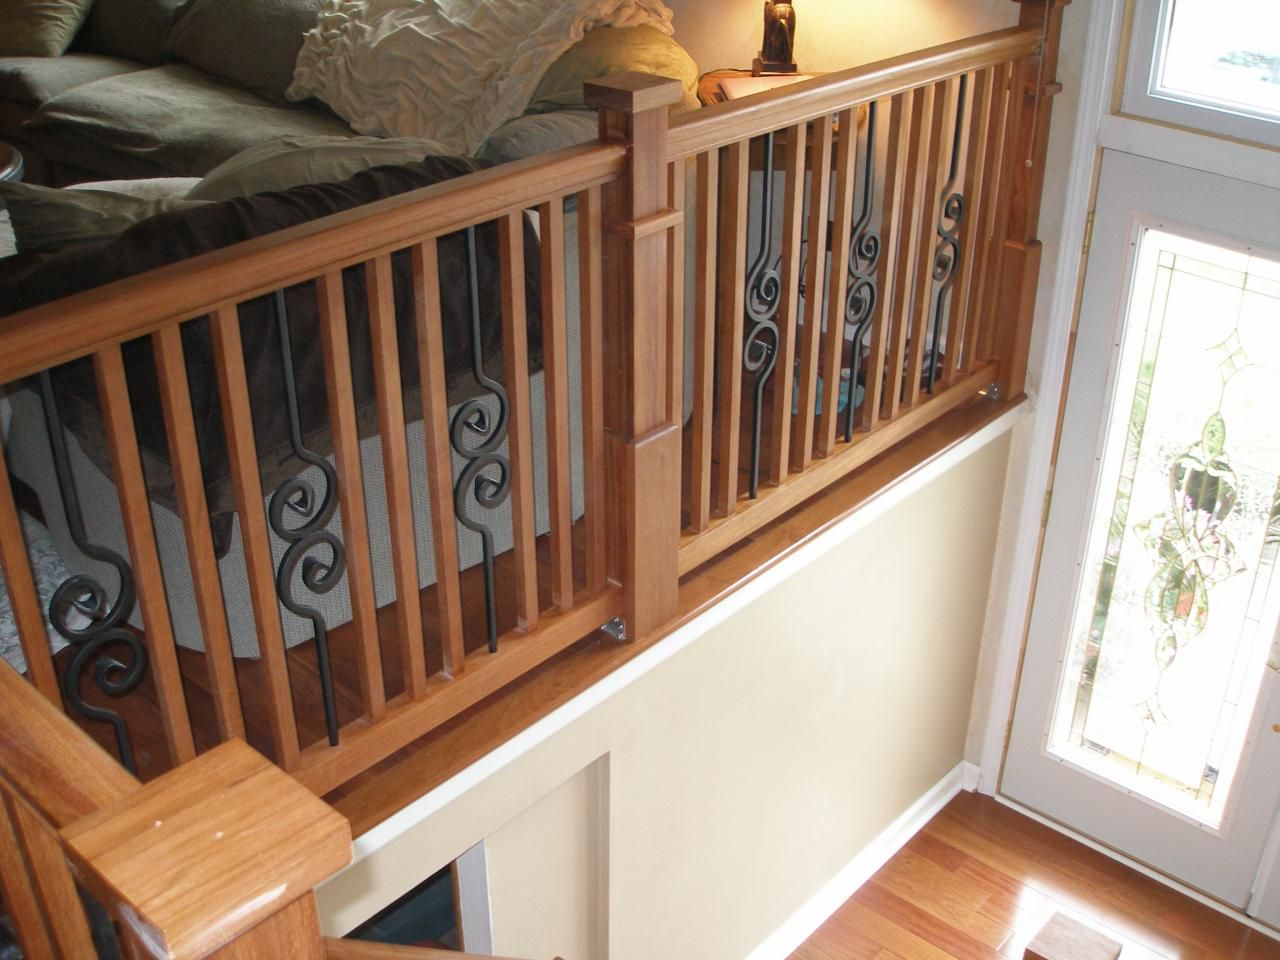 Wood Iron Railings : Rail with wood and wrought iron balusters … pinteres…